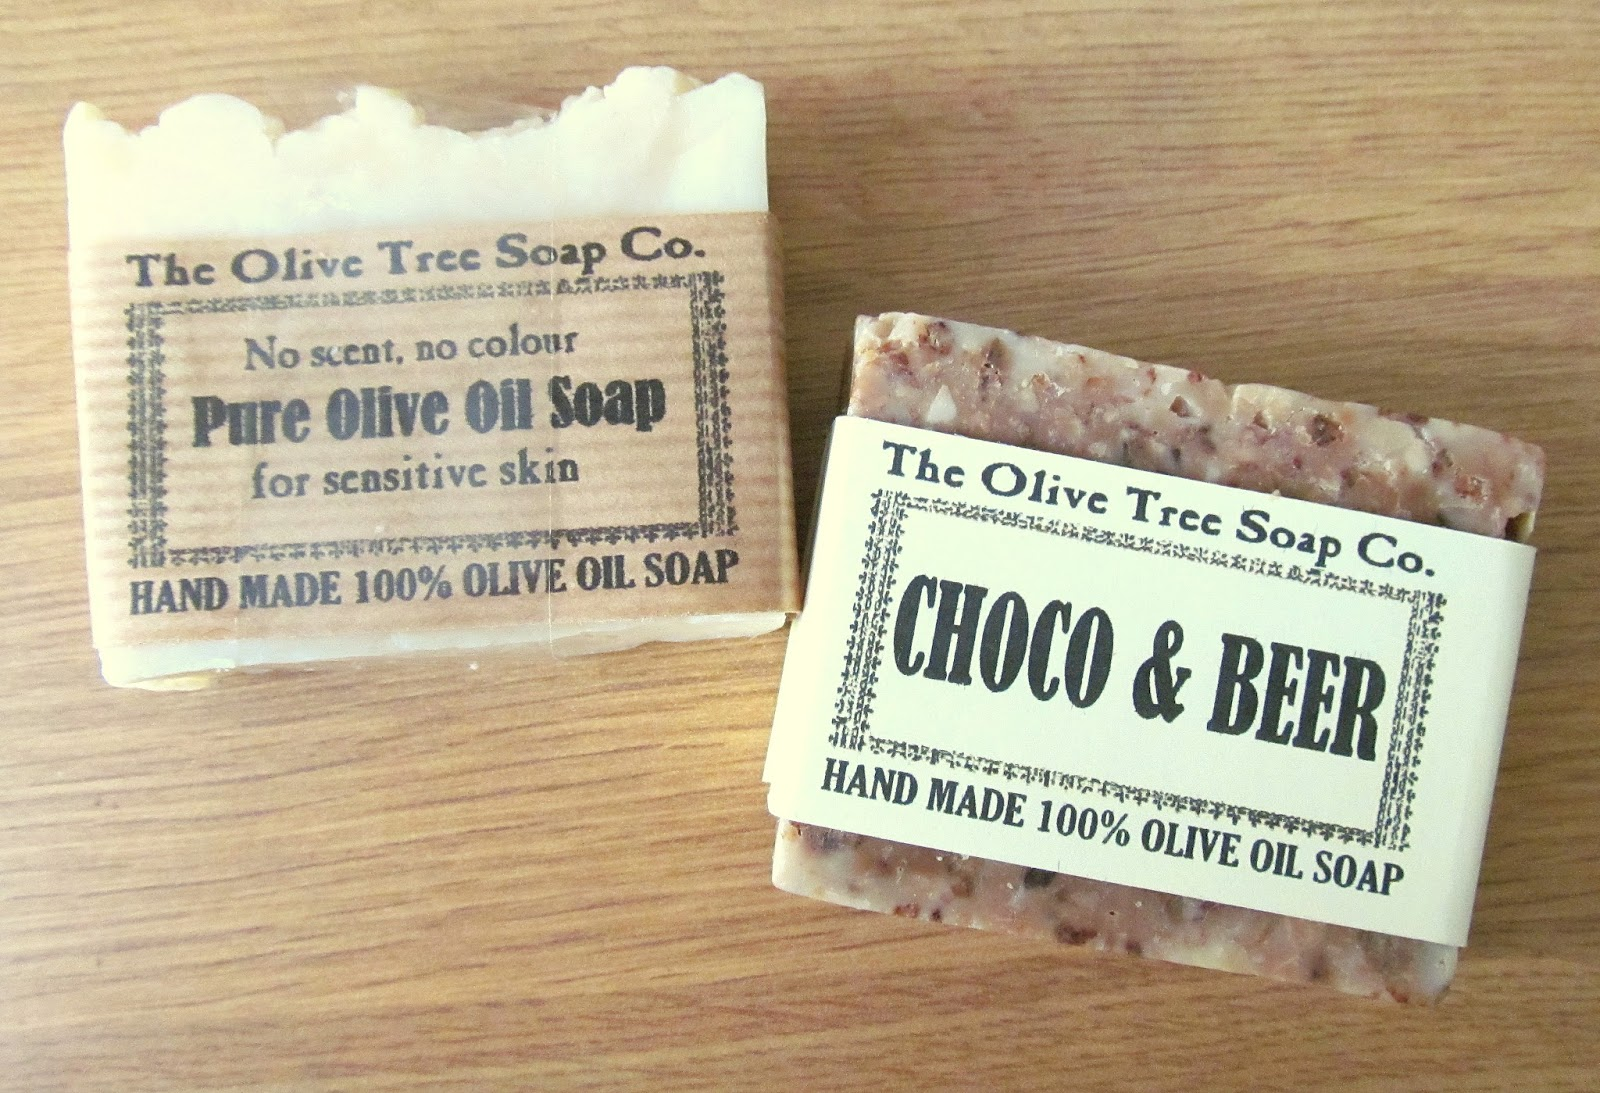 The Olive Tree Soap Co